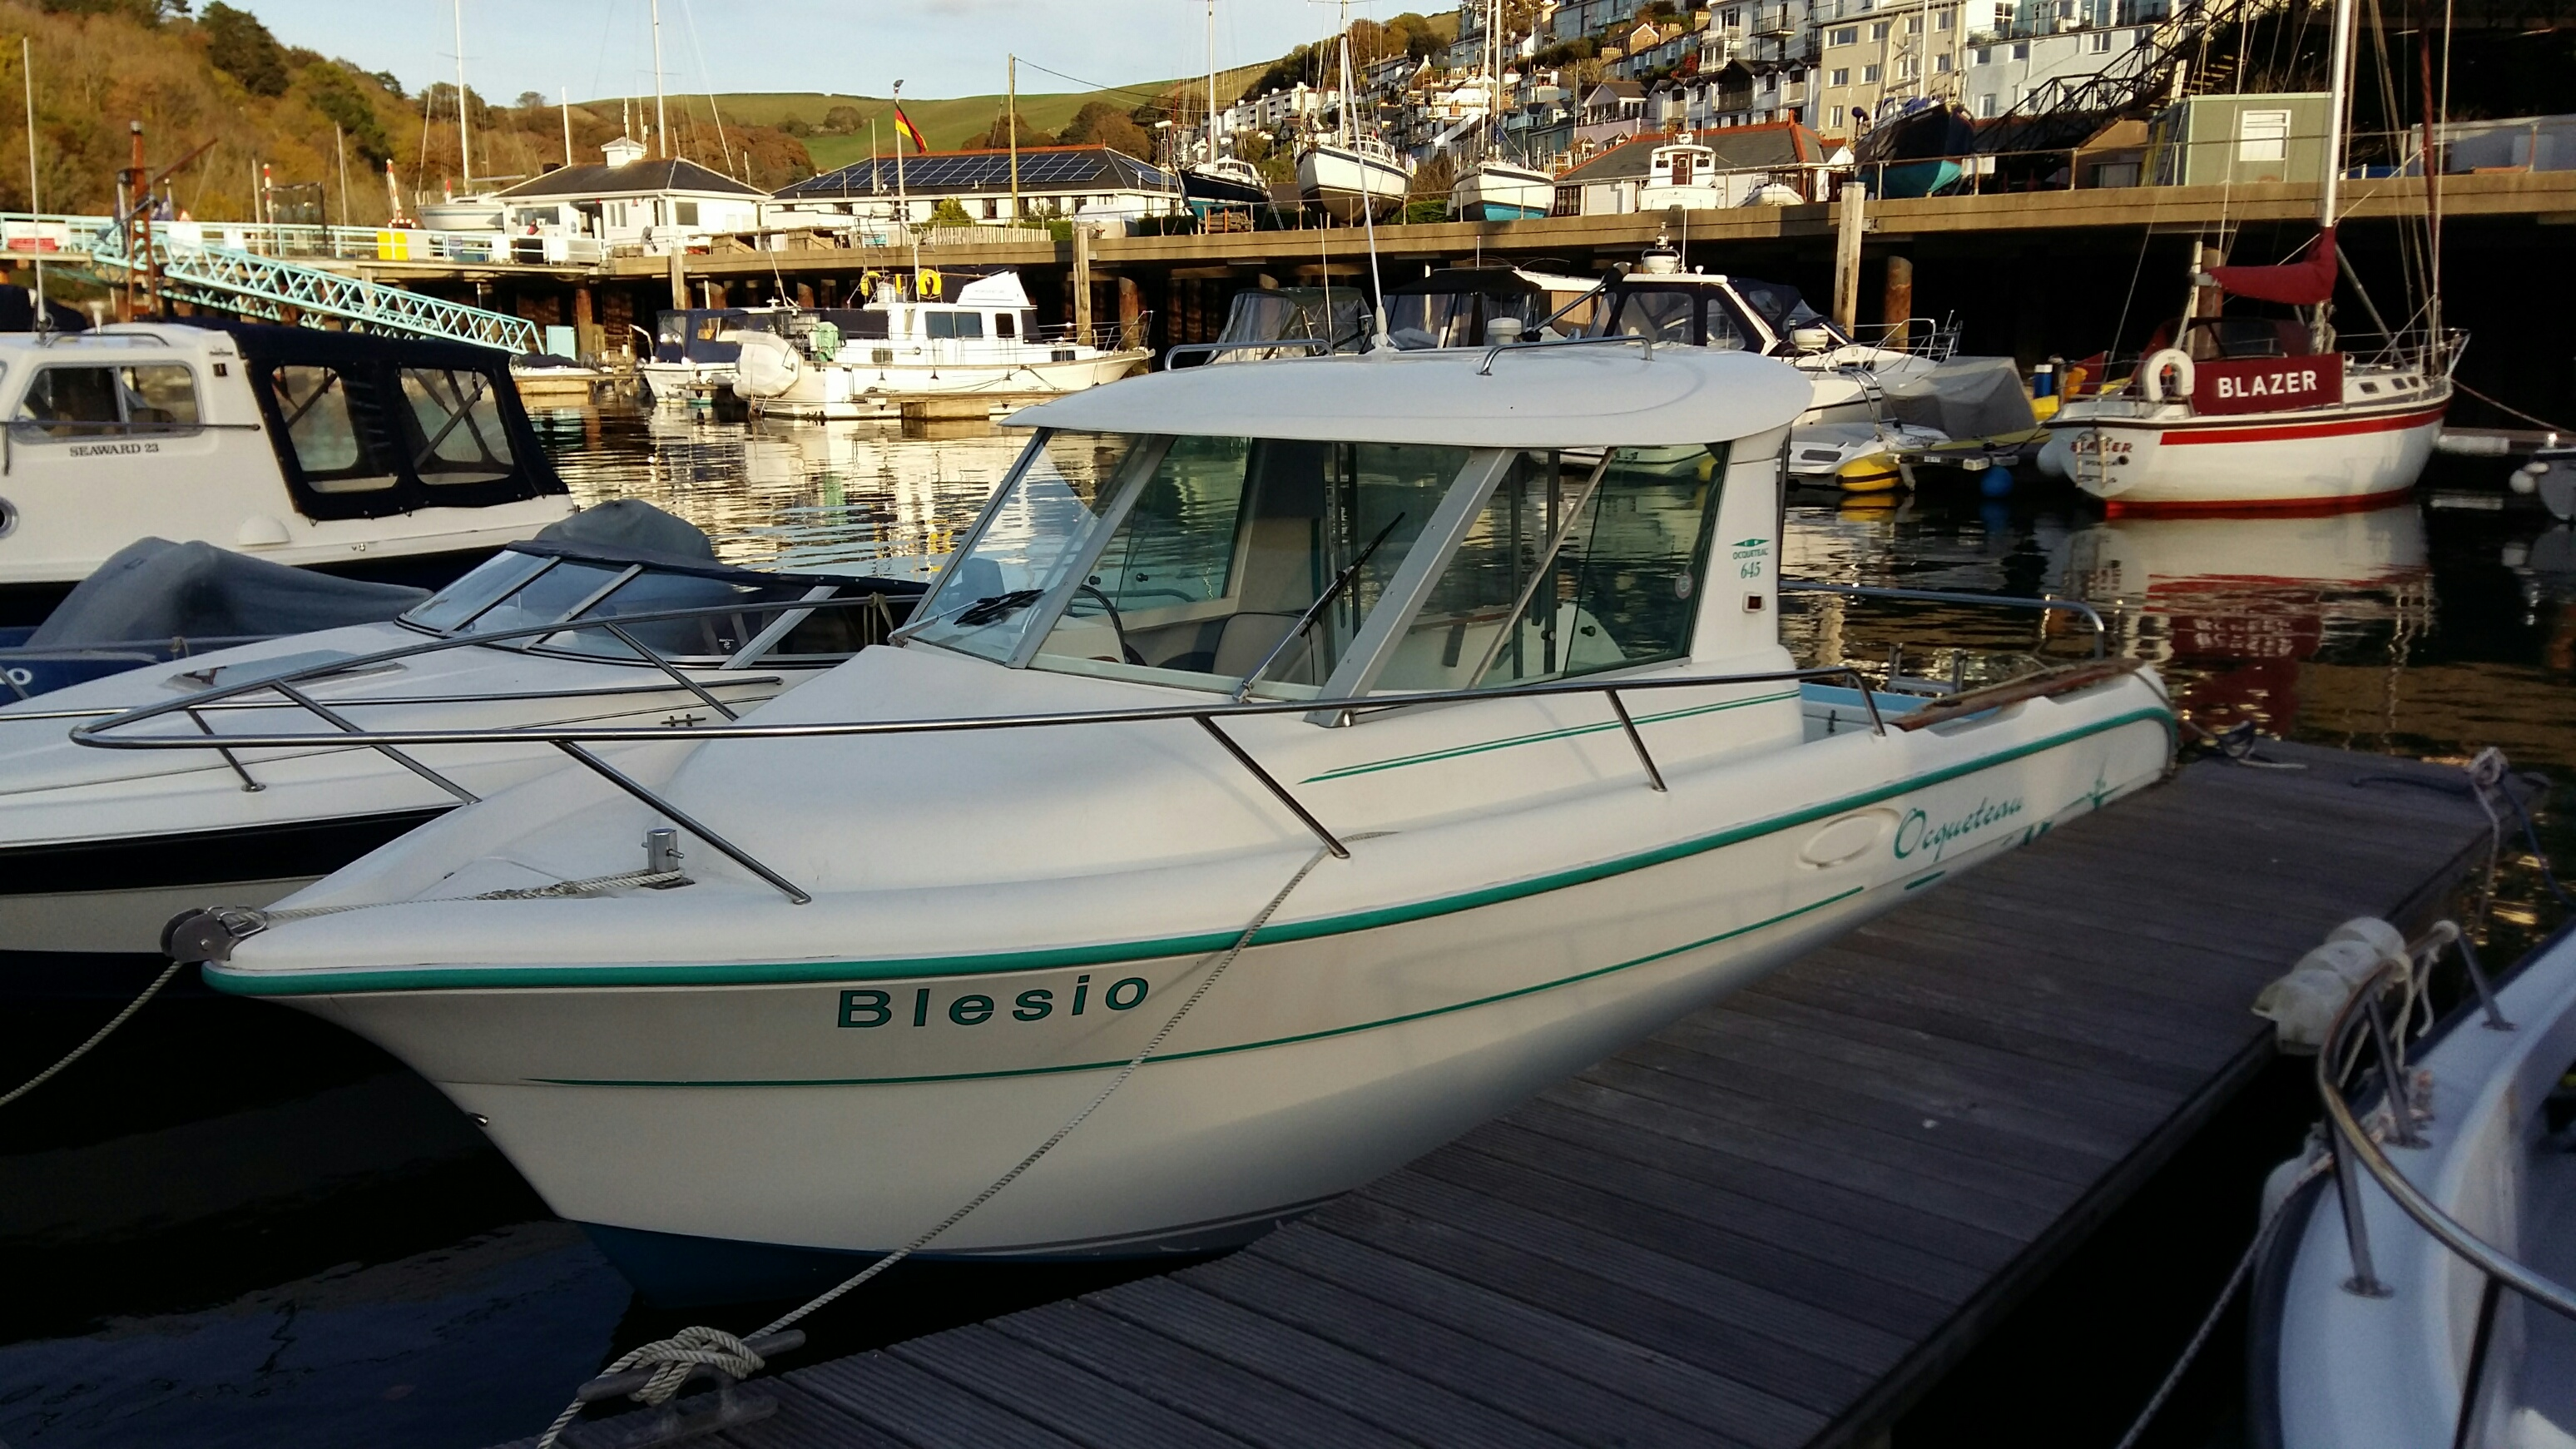 Ocqueteau 645 Ocqueteau 645 - For Sale £19,950.00